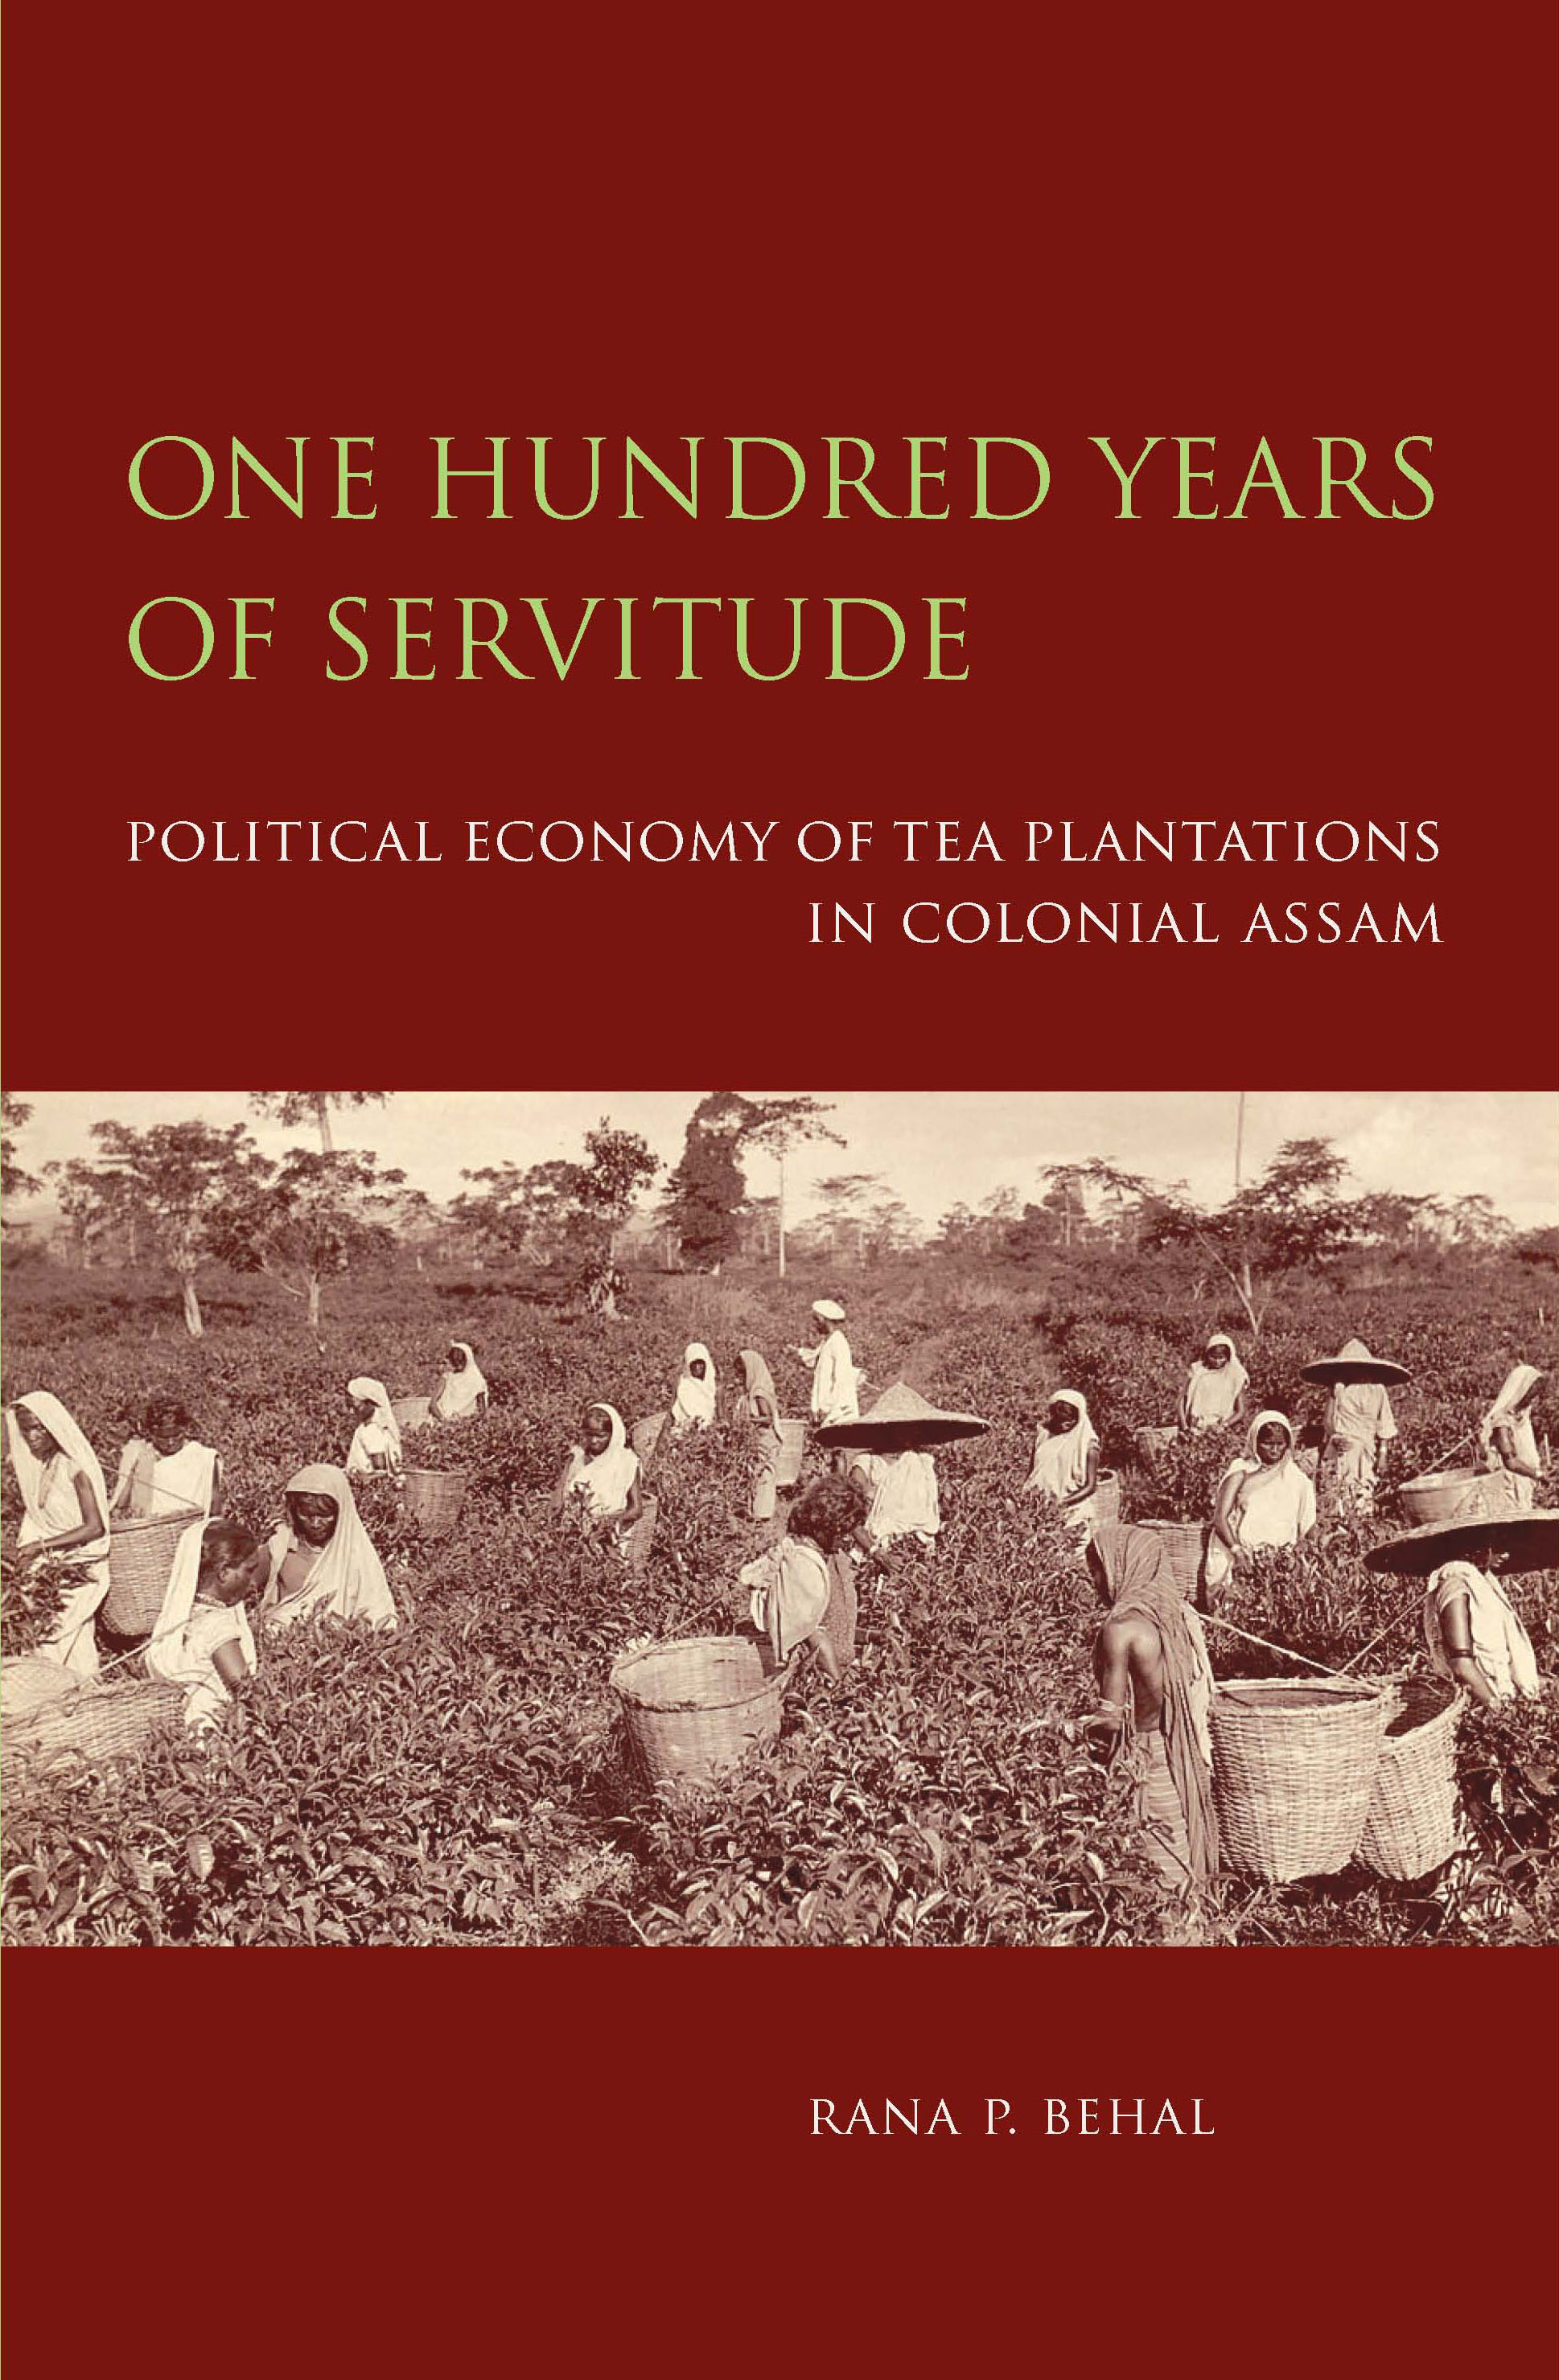 One Hundred Years of Servitude, Political economy of Tea Plantations in Colonial Assam